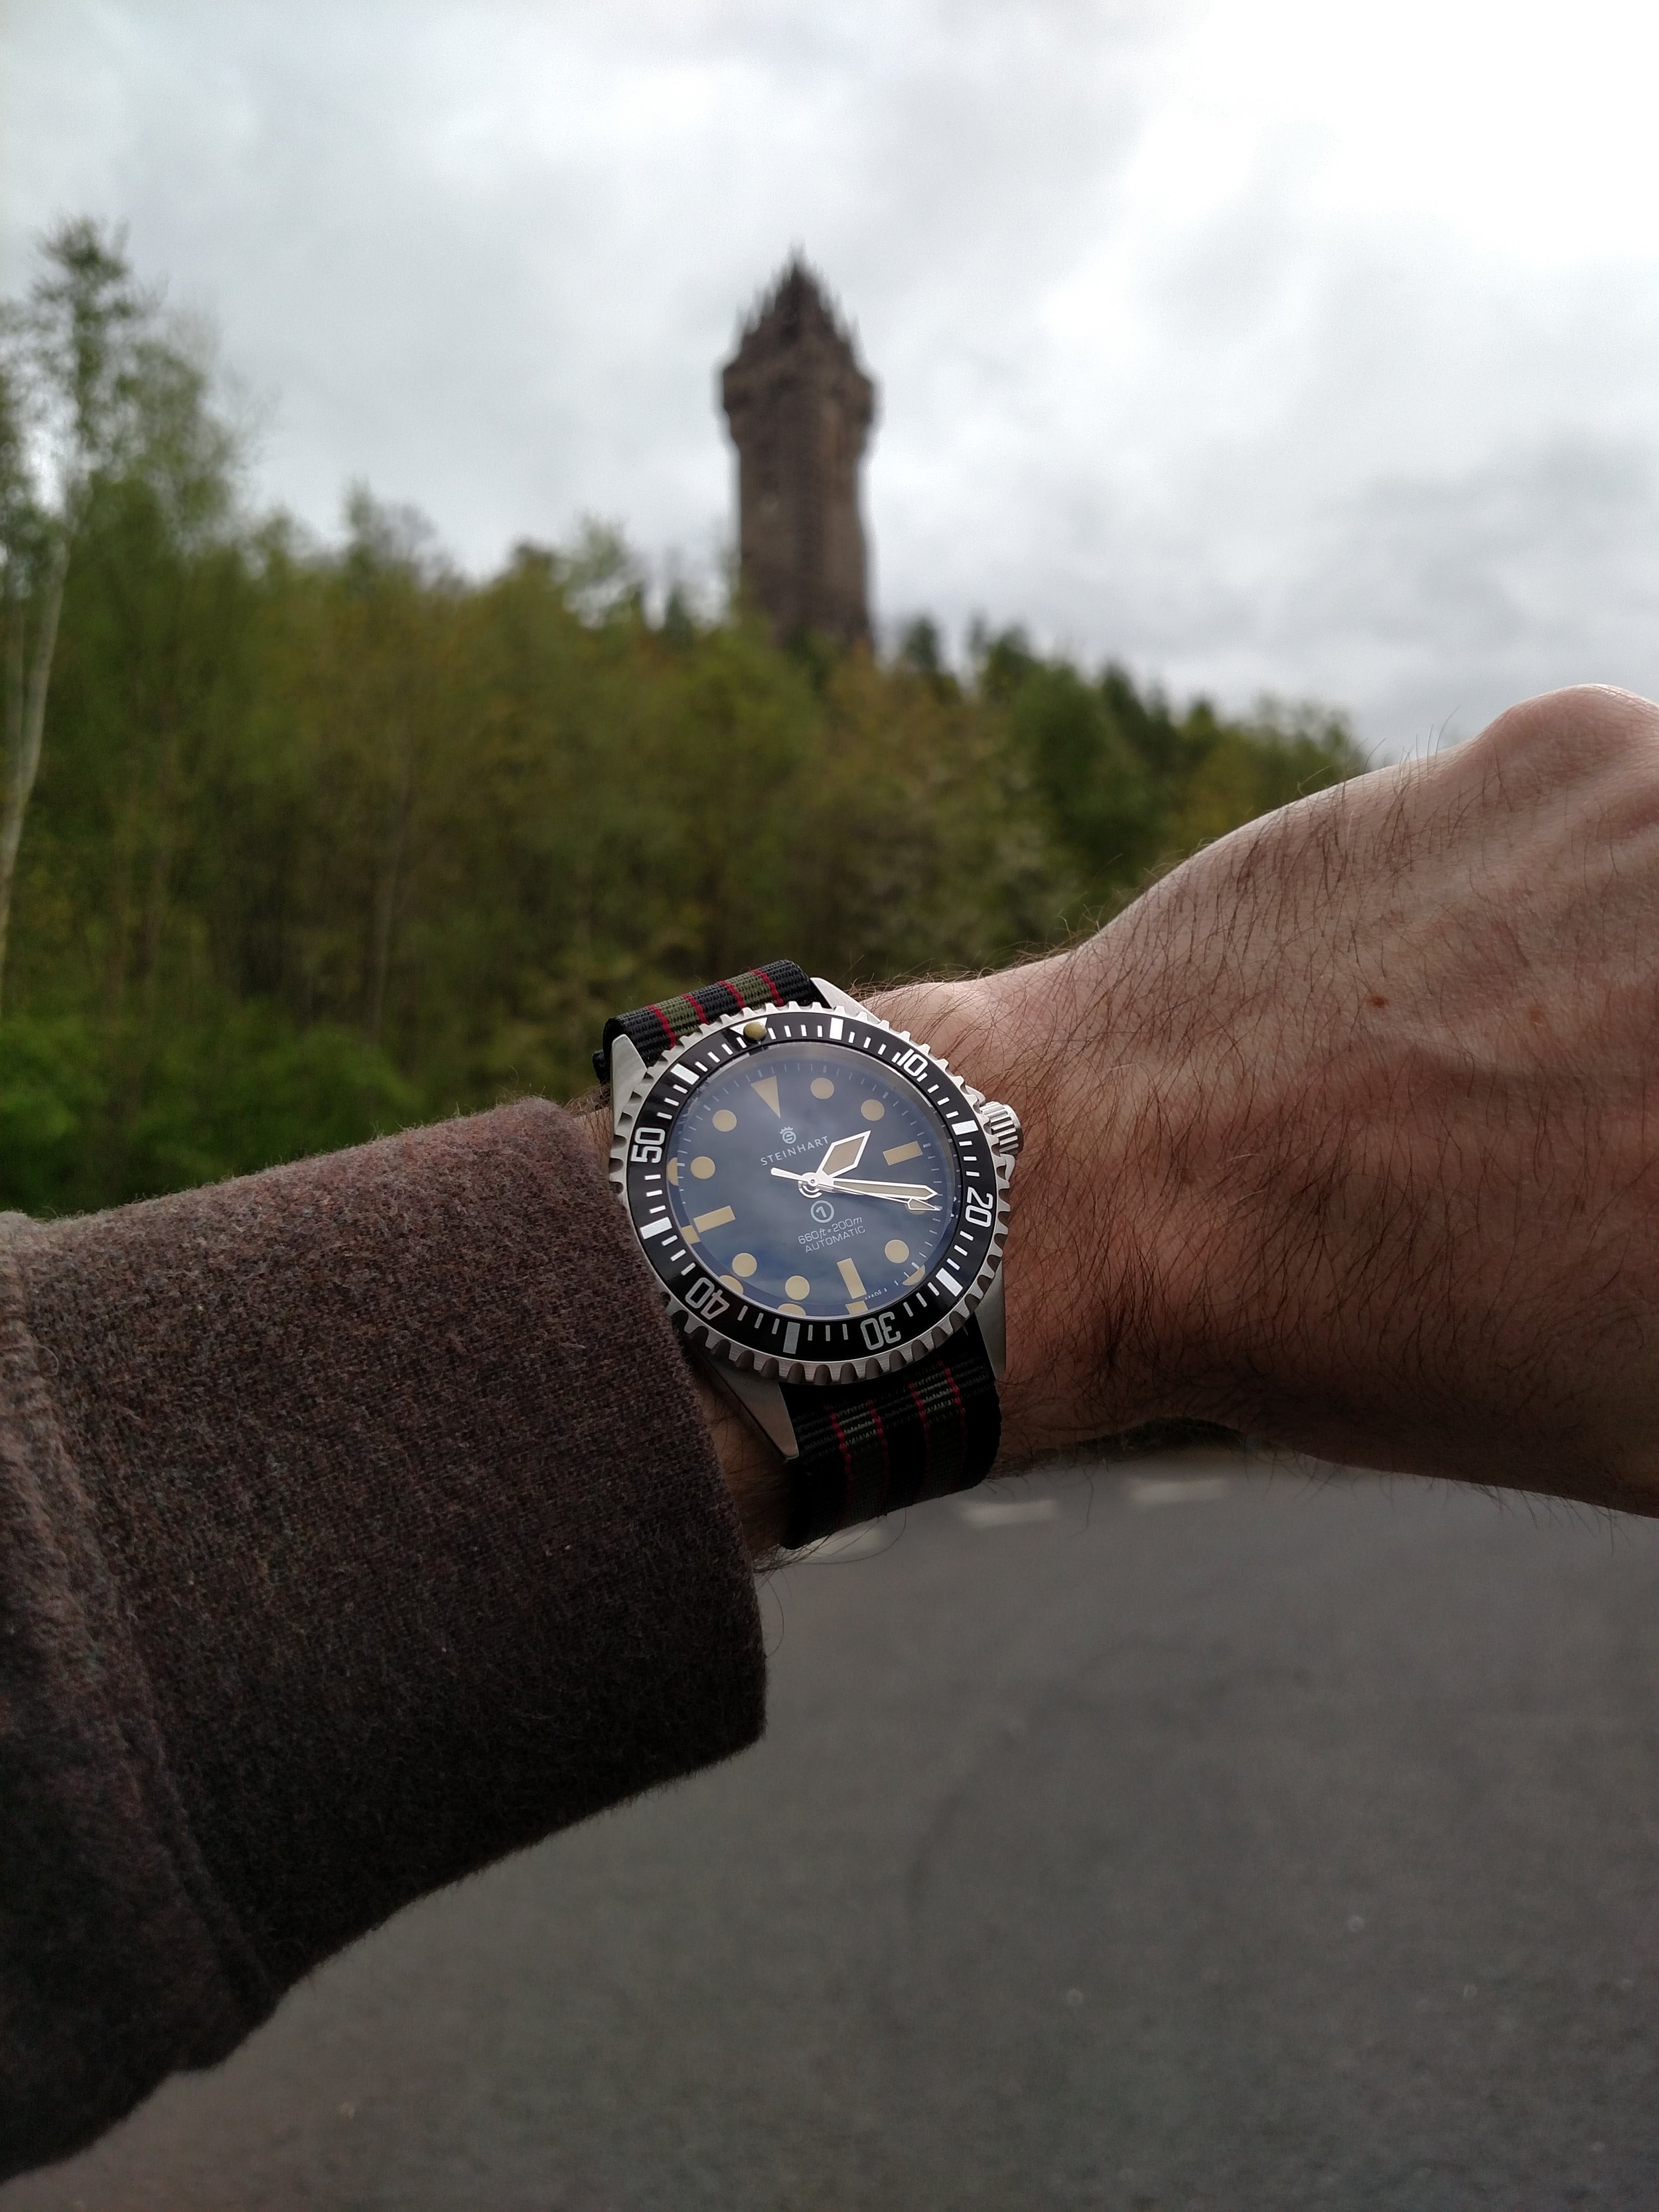 Steinhart Ocean Vintage Military (Rolex 5517 homage) beneath the William Wallace National Monument  Abbey Craig, Stirling, Scotland